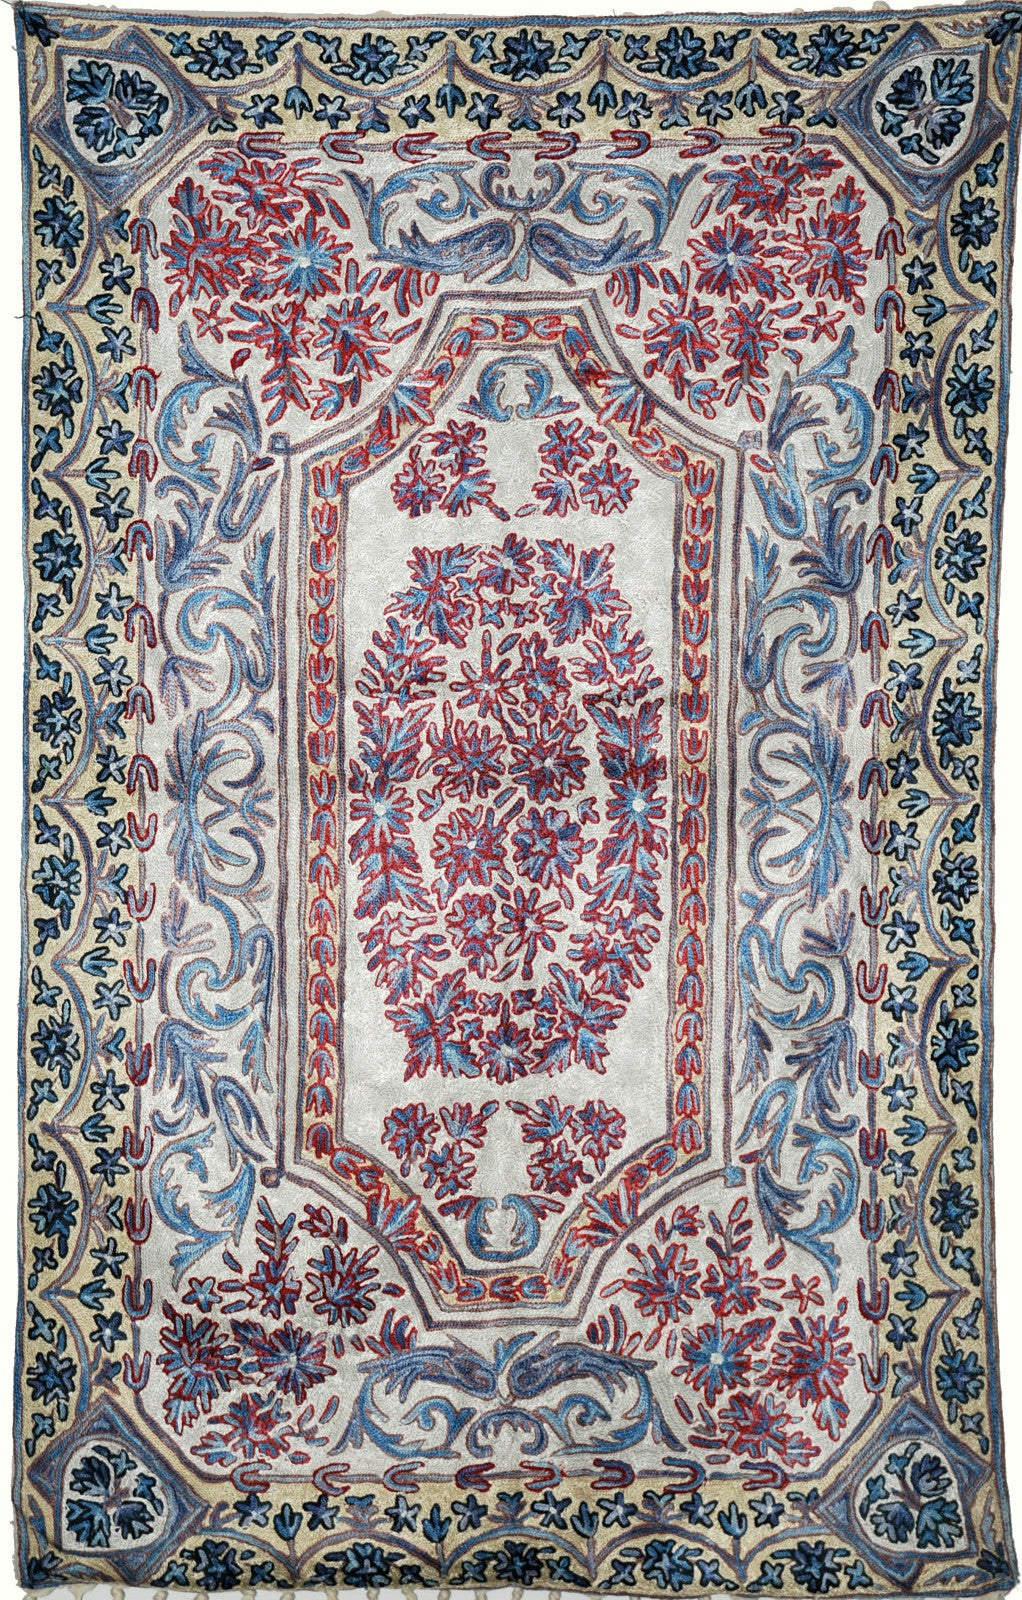 ChainStitch Tapestry Silk Rug, Multicolor Embroidery 2 5x4 feet #CWR10112